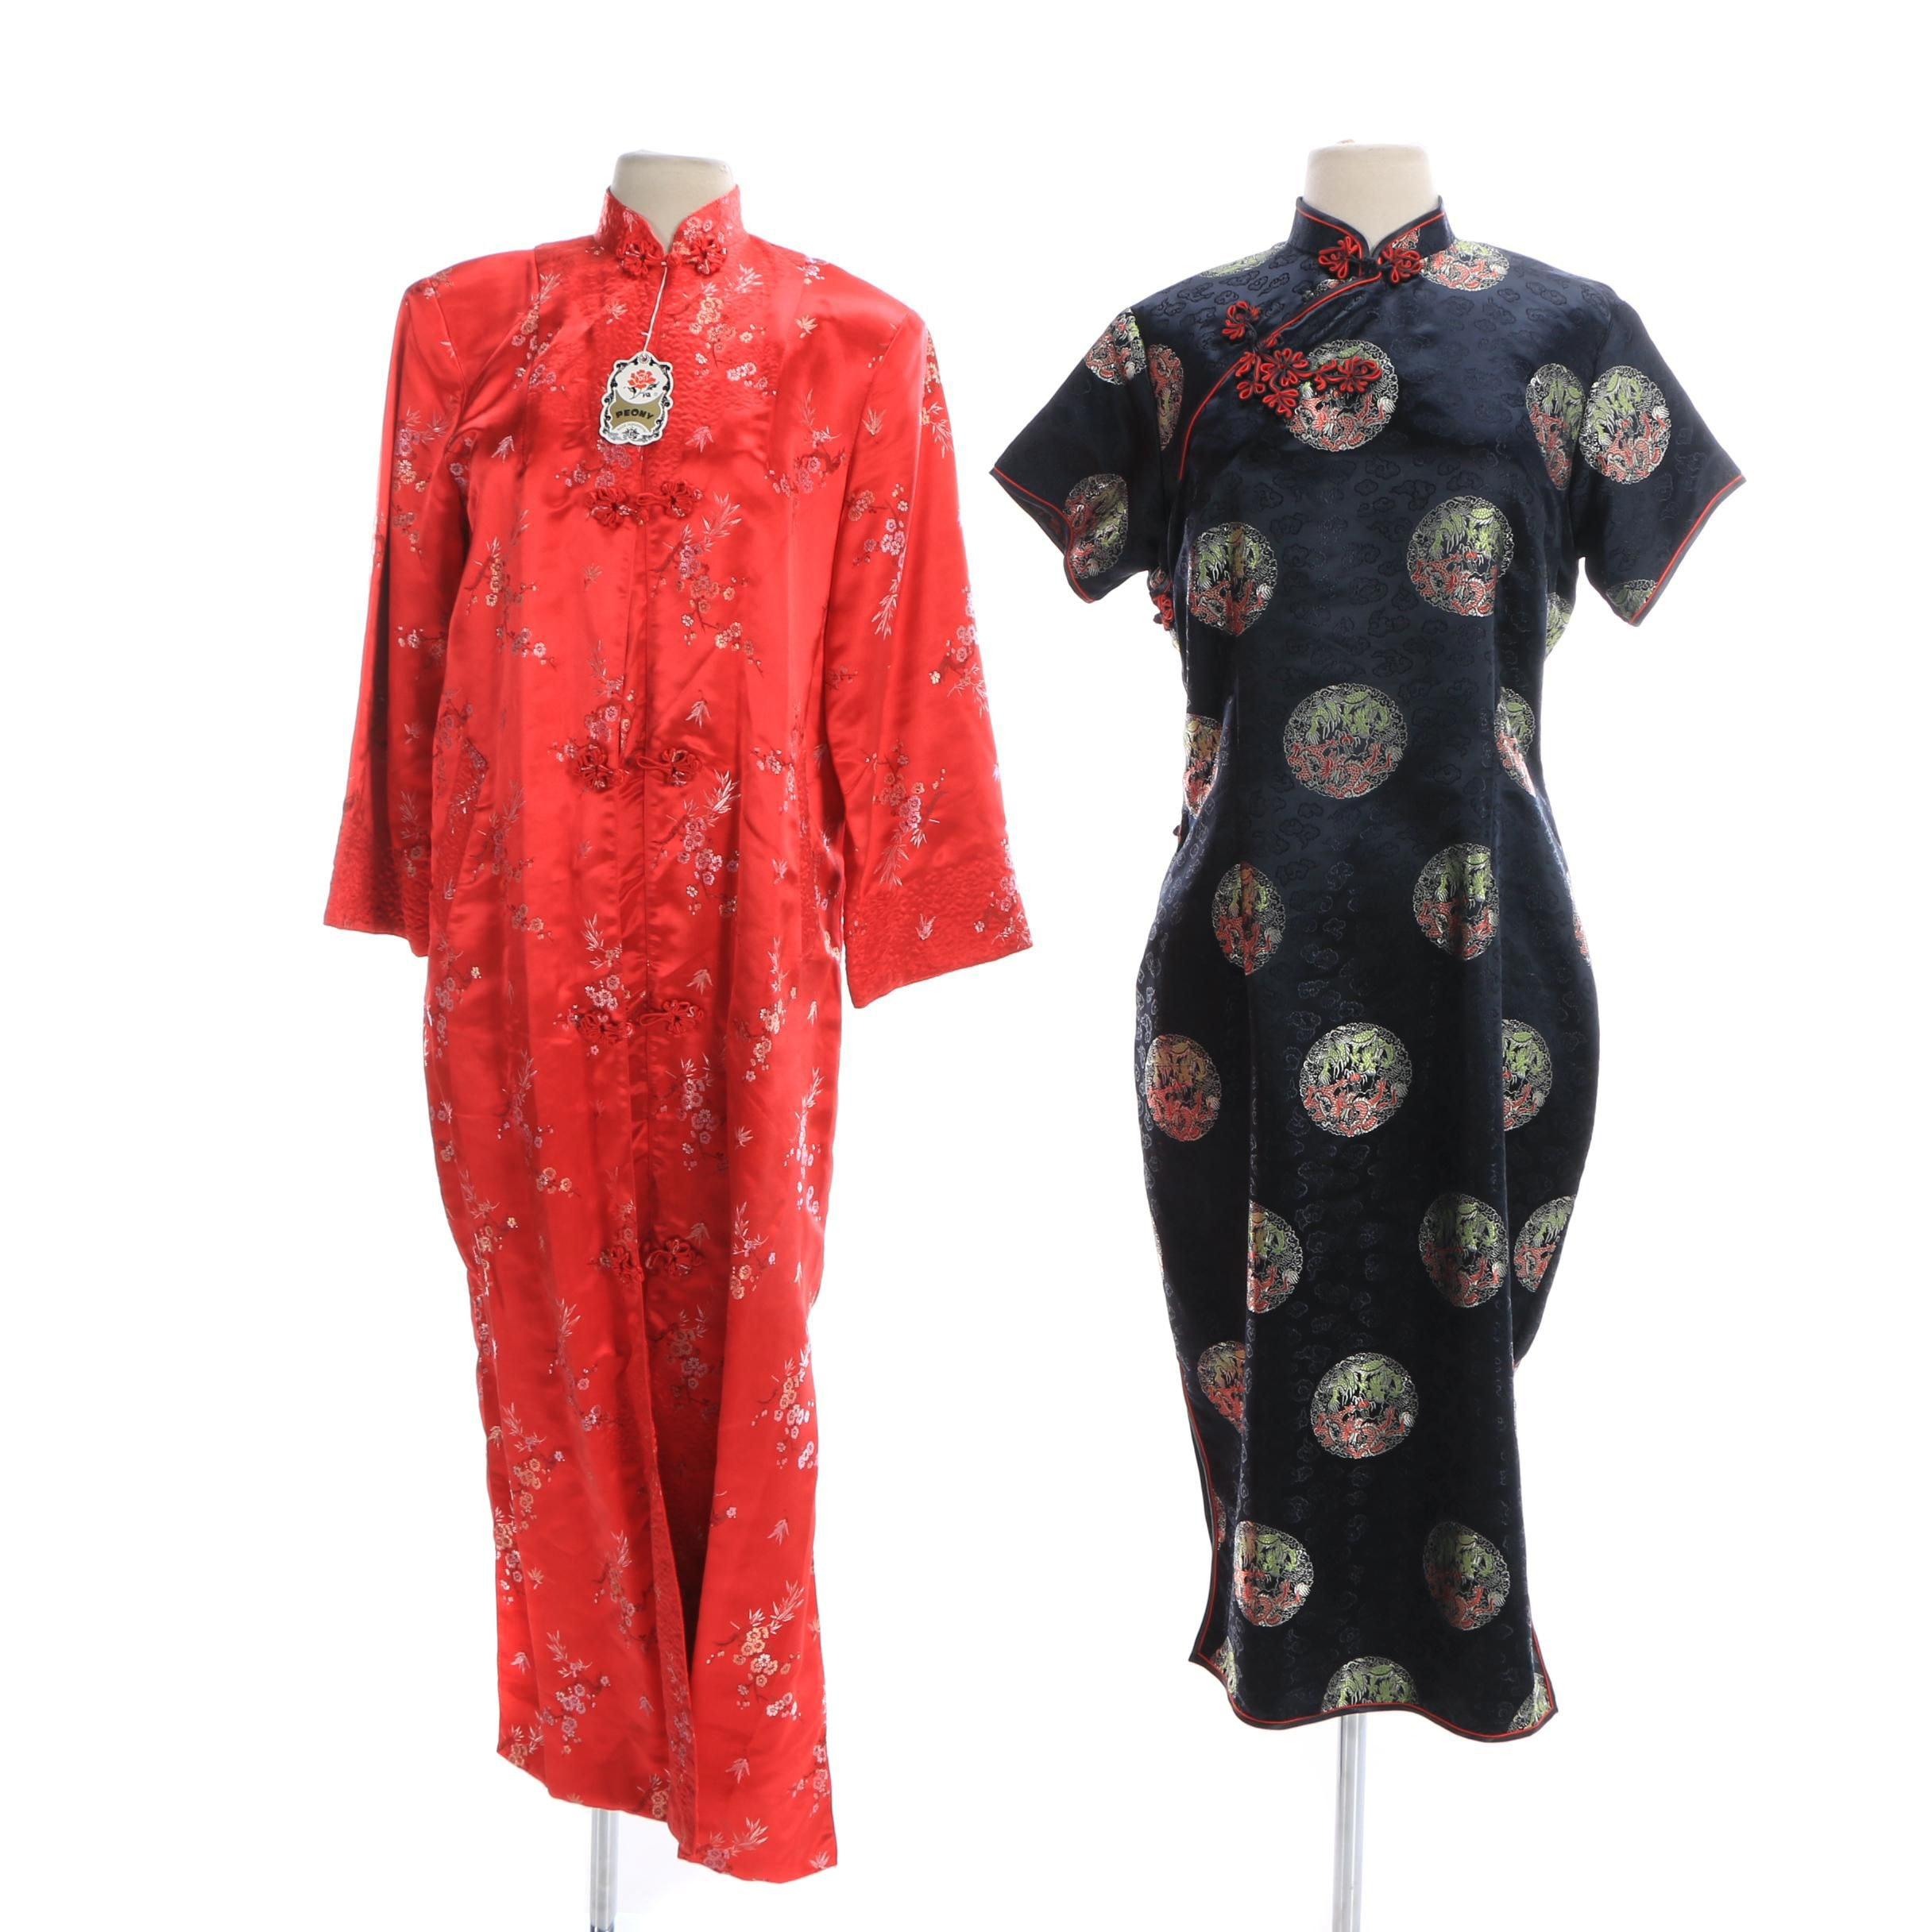 Peony Shanghai, China Brocade Dress Coat and Cheongsam Dress